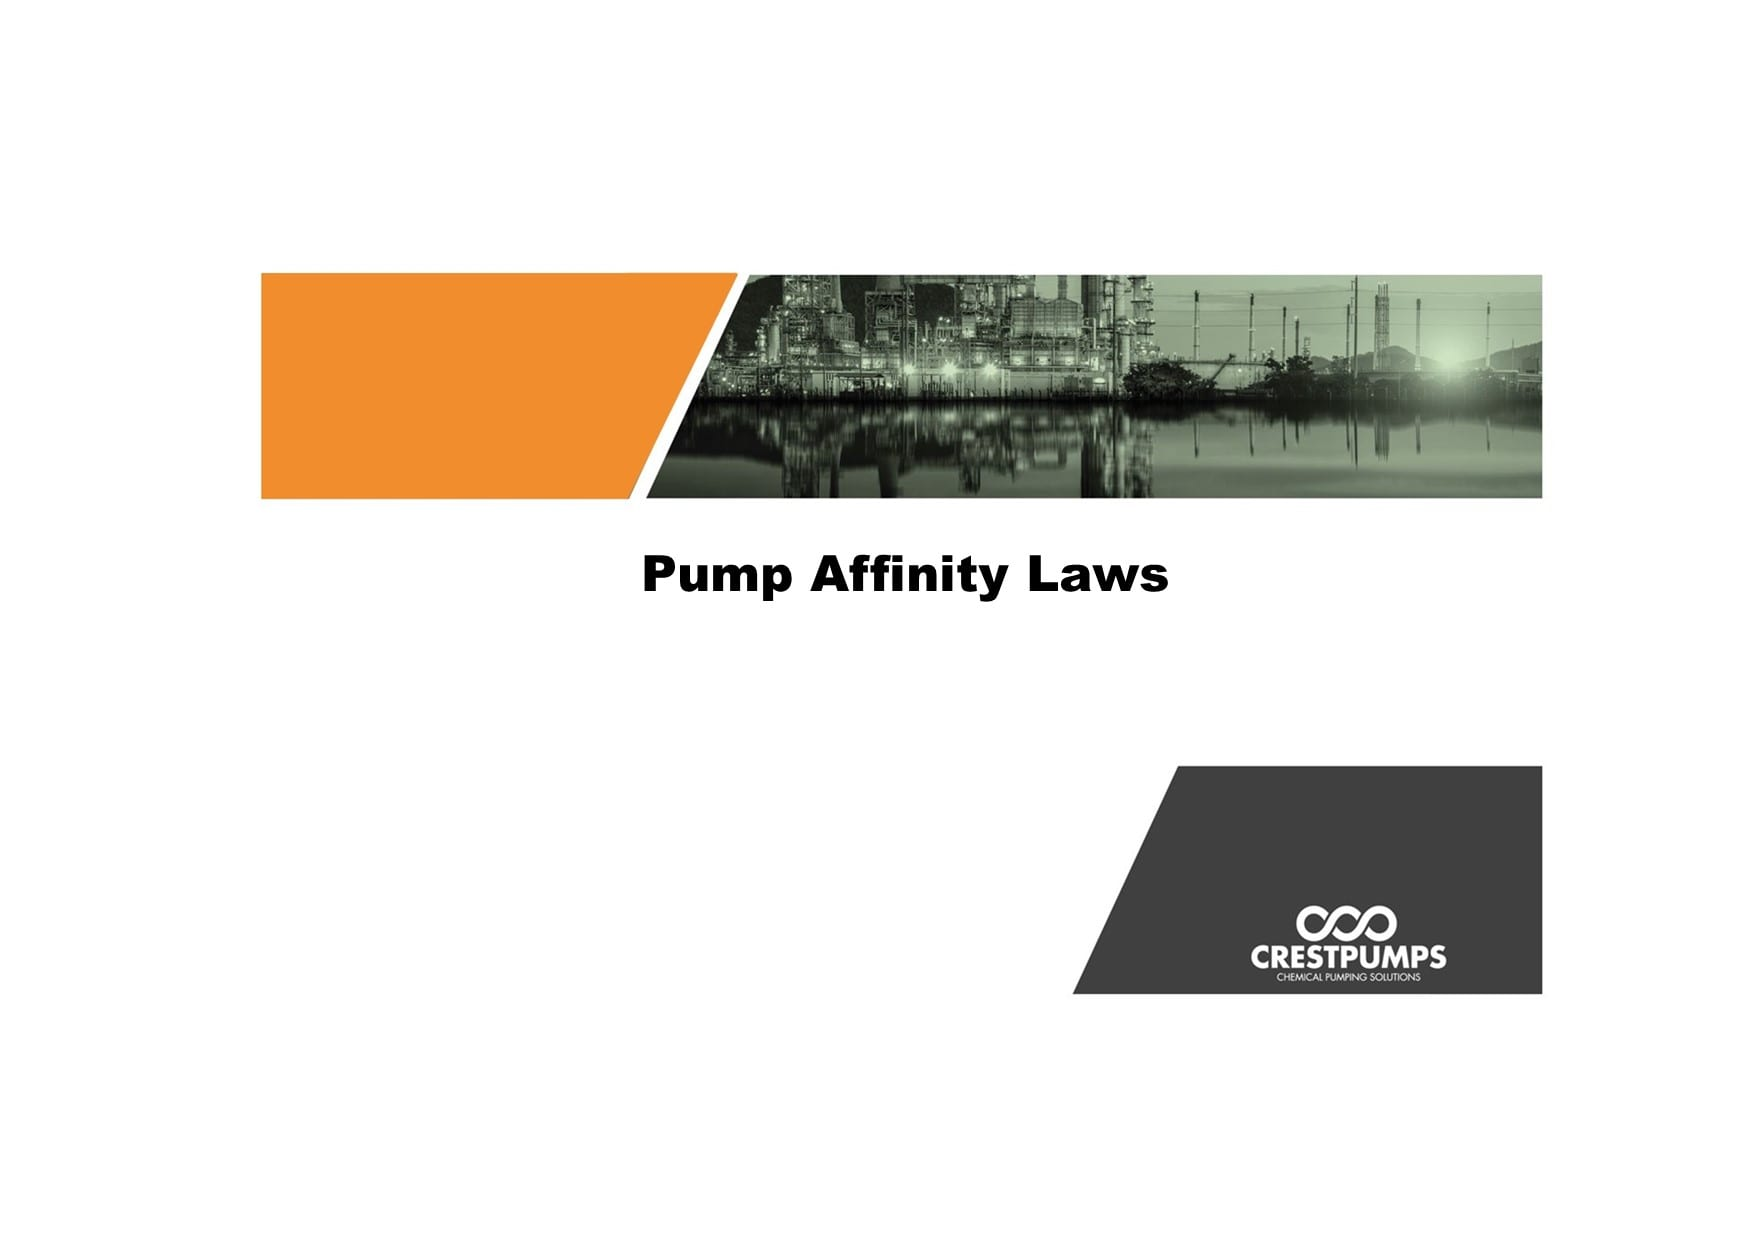 crest pumos logo and title page for pump affinity laws blog post